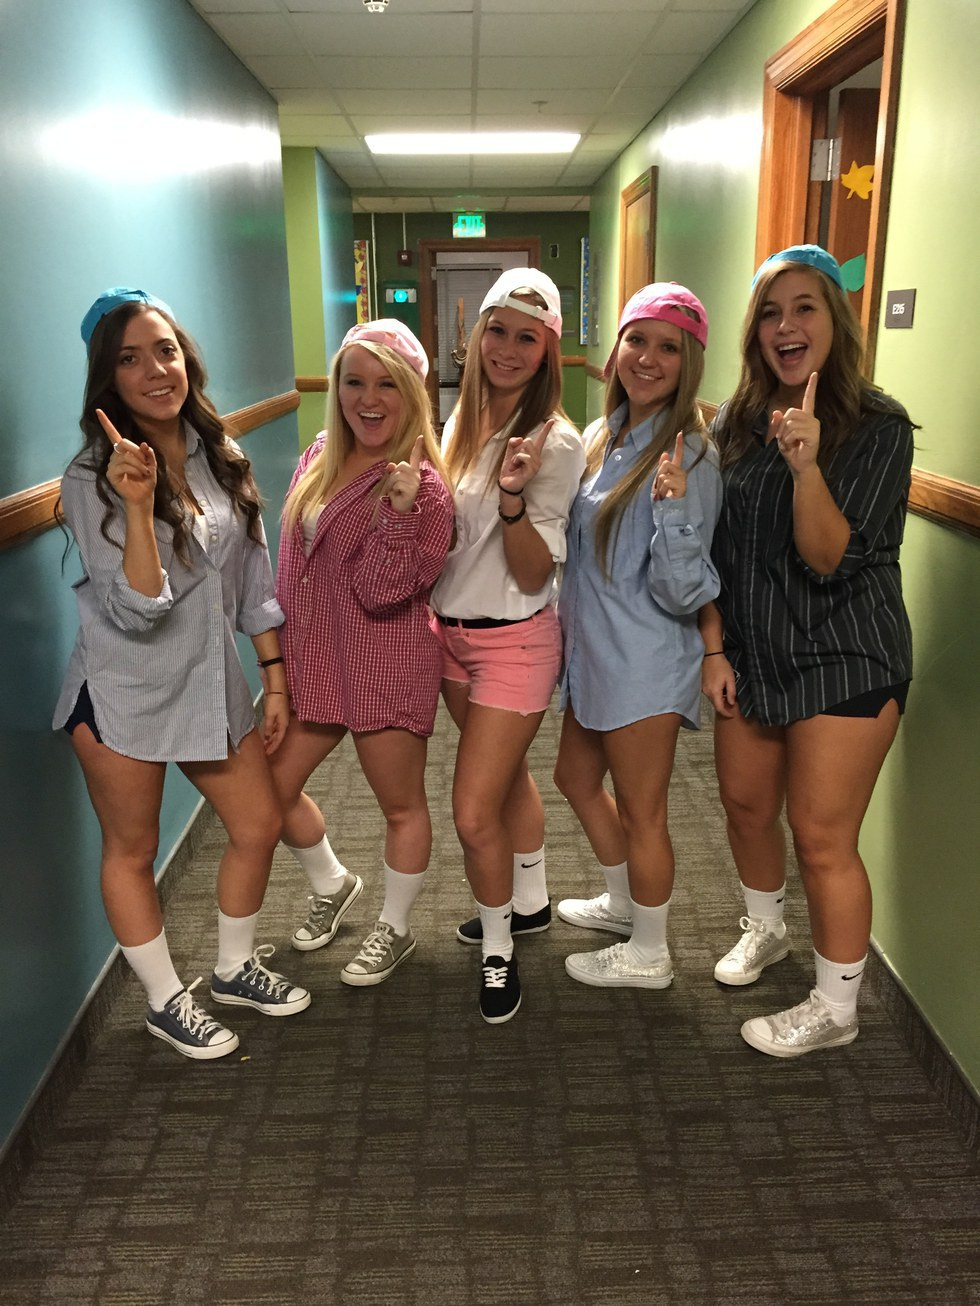 10 Costumes Youre Guaranteed To See On Every College Campus